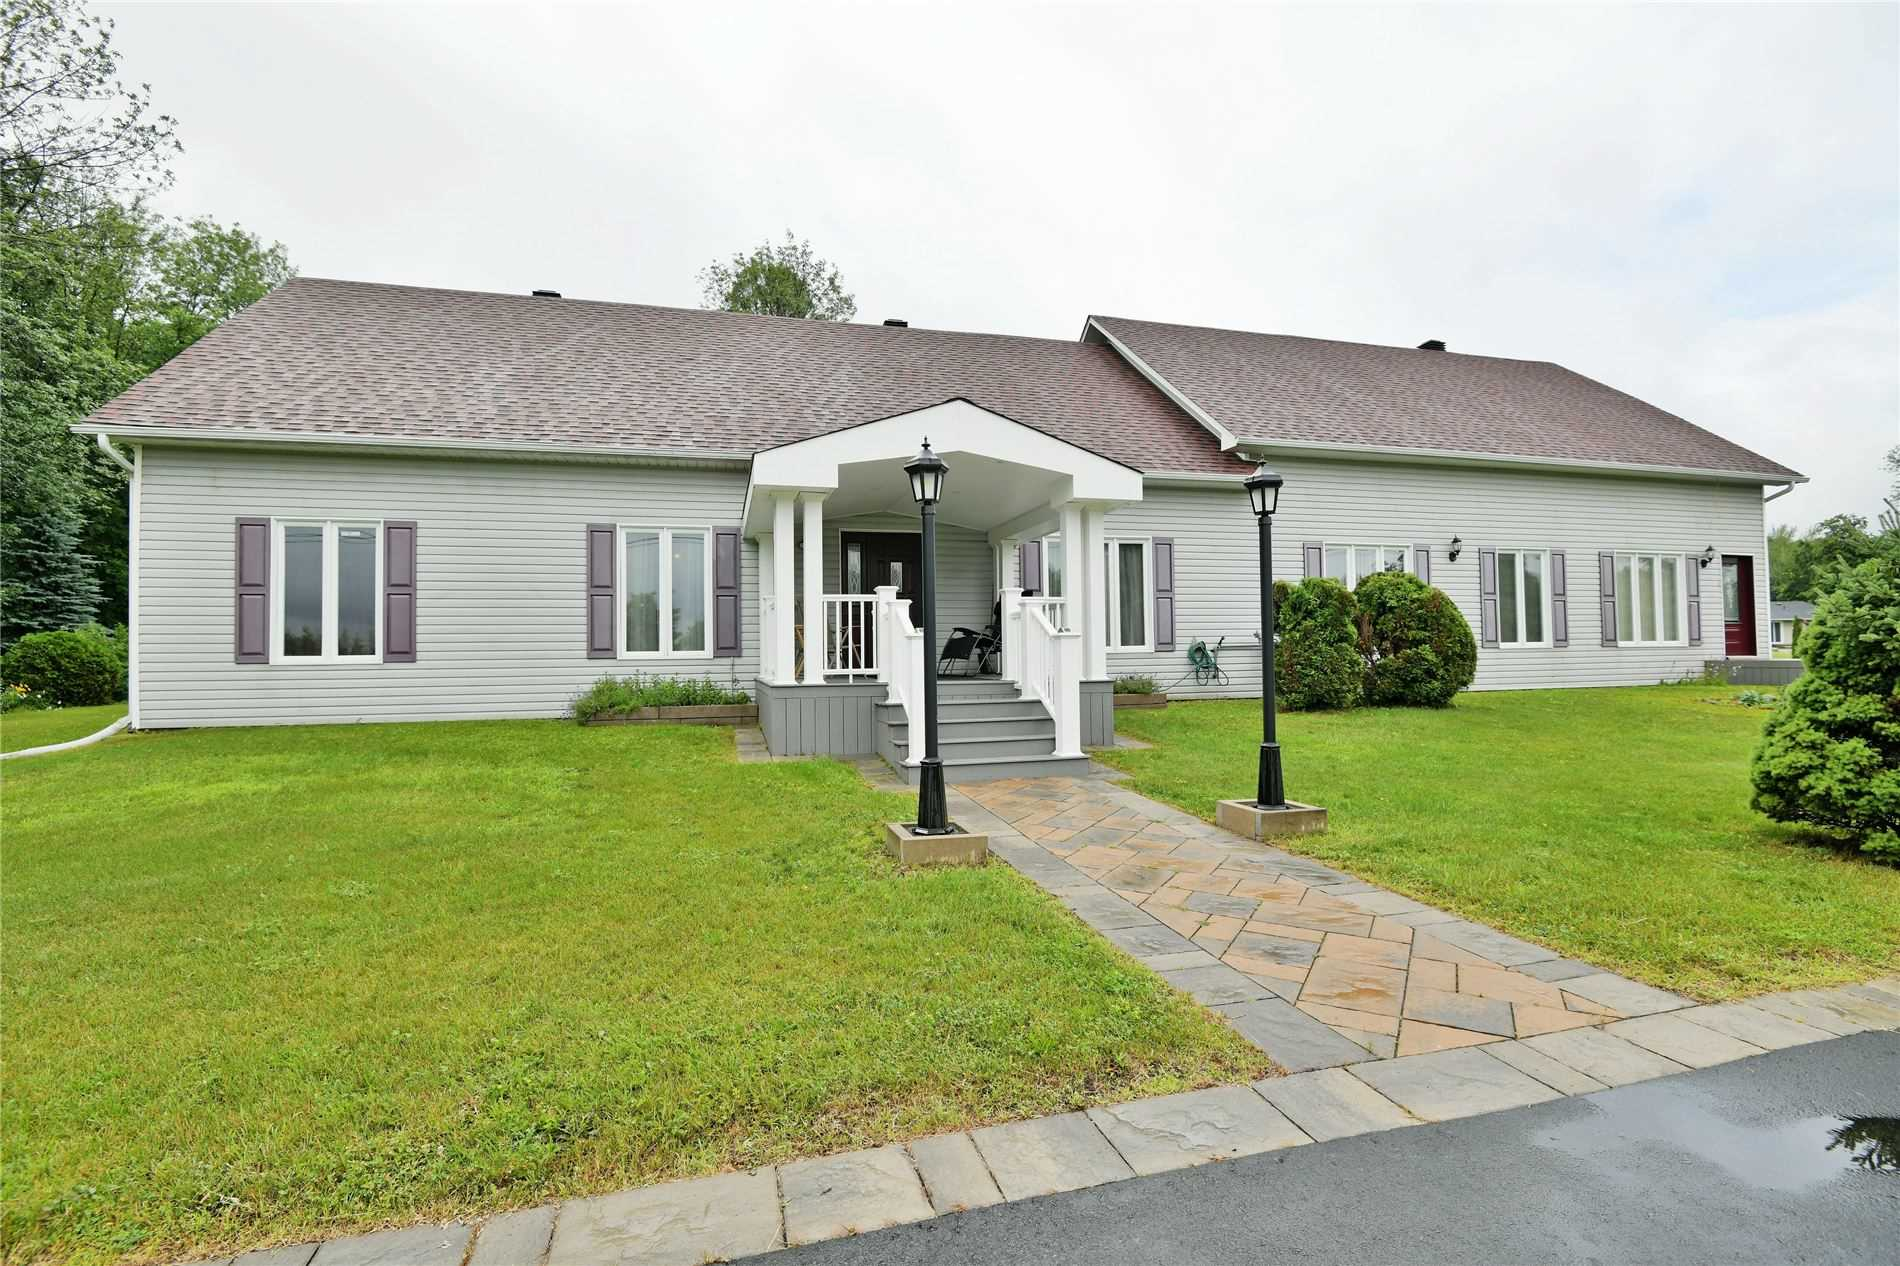 Custom Built 3 Bedroom, 3Bth Bungalow, With Additional App.1800 Sq. Ft. Residence Has Hardwood Floors, Parquet And Ceramic Tile , Large Open Concept Main Living Area With High Ceilings Thru-Out. Enjoy The Spacious Master With Whirlpool Tub In Corner Of Master For Those Intimate Evenings And Its Own Ensuite. The Residence And Office Each Have Their Own Gas Furnaces, Hydro, Central Air And Separate 200 Amp Breaker Panels. House Is On A Concrete Slab.